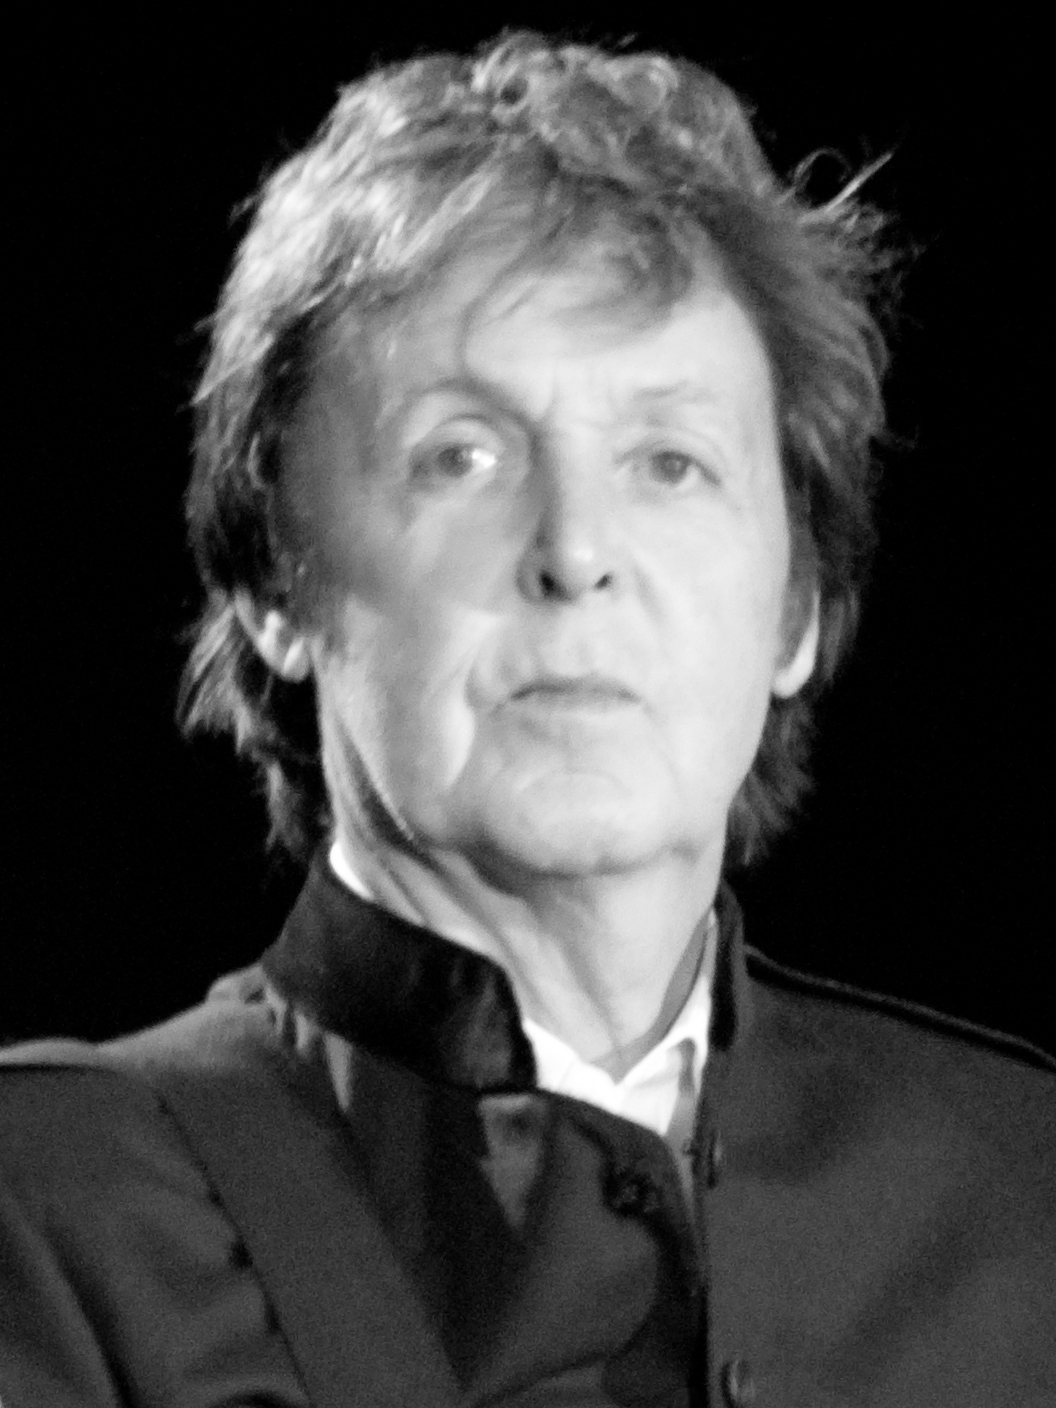 Paul_McCartney_black_and_white_2010_TFA.jpg